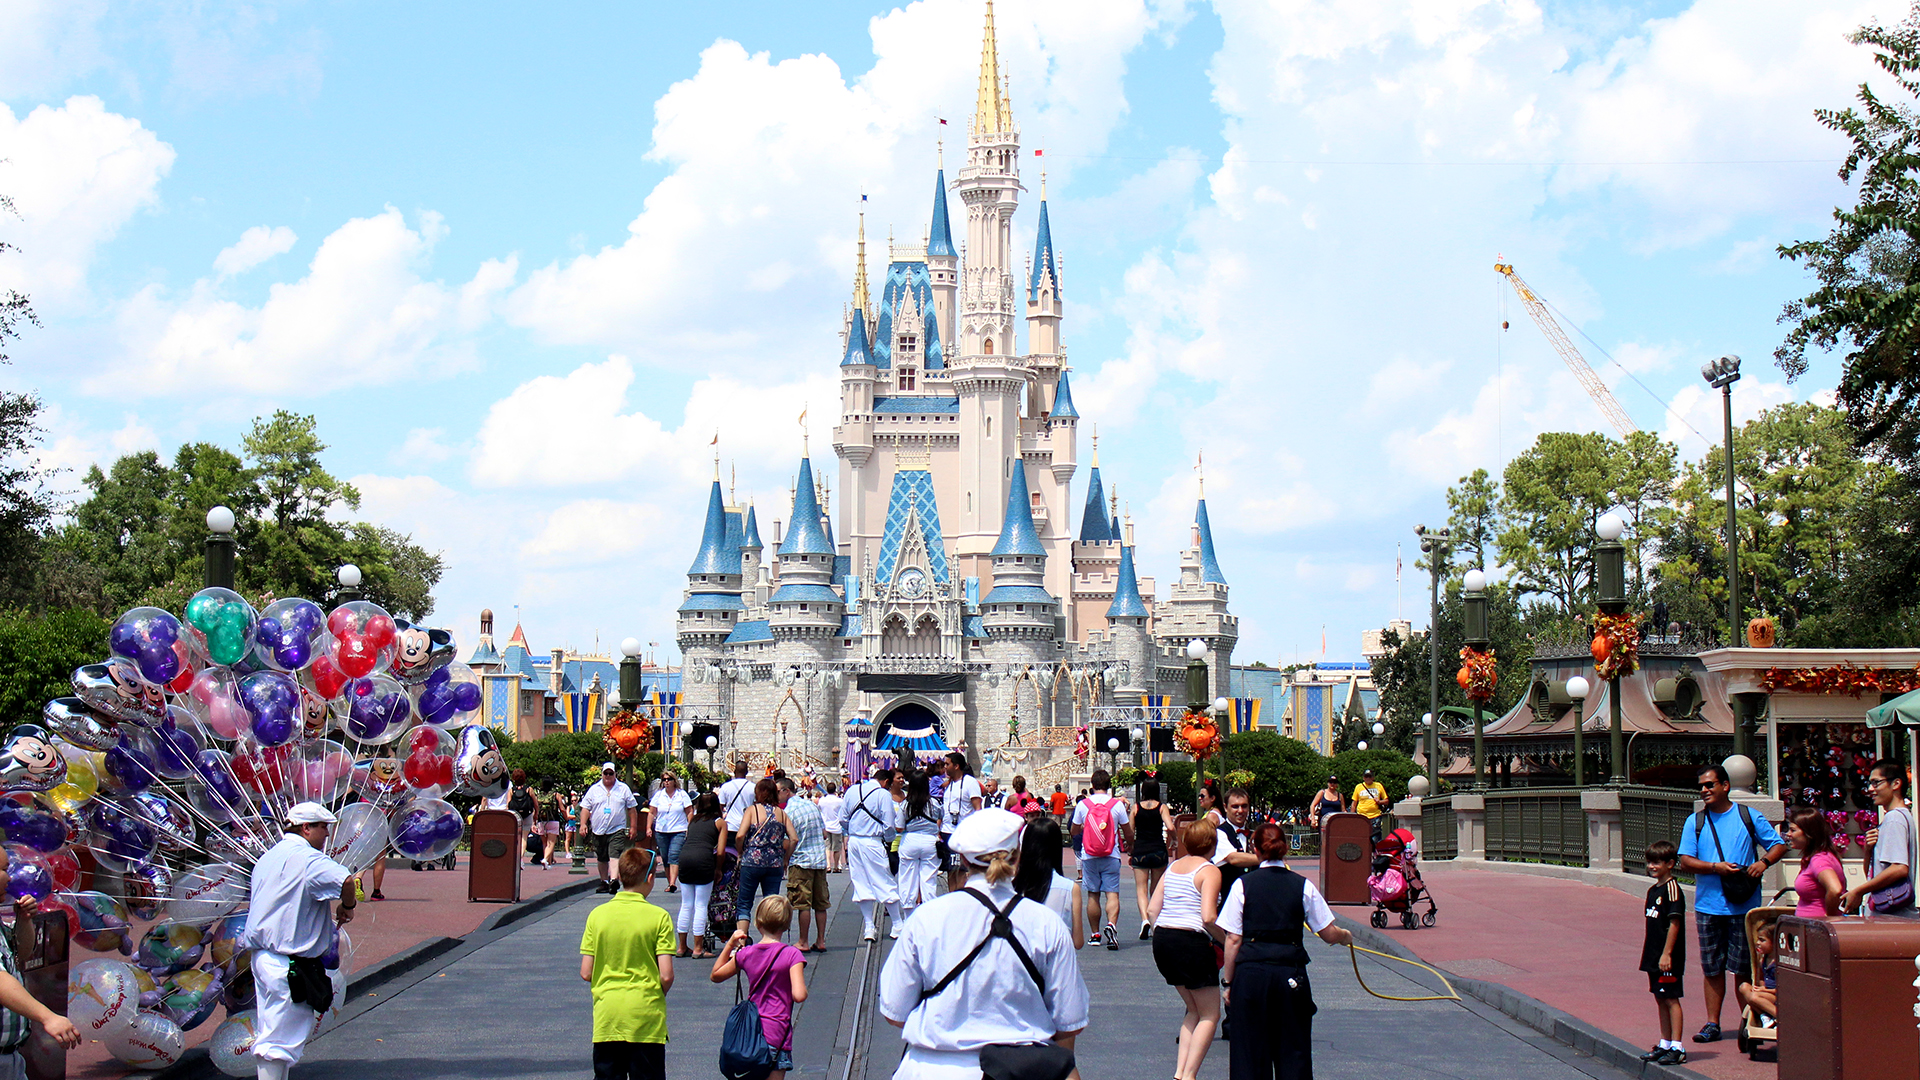 Disney Magic Kingdom